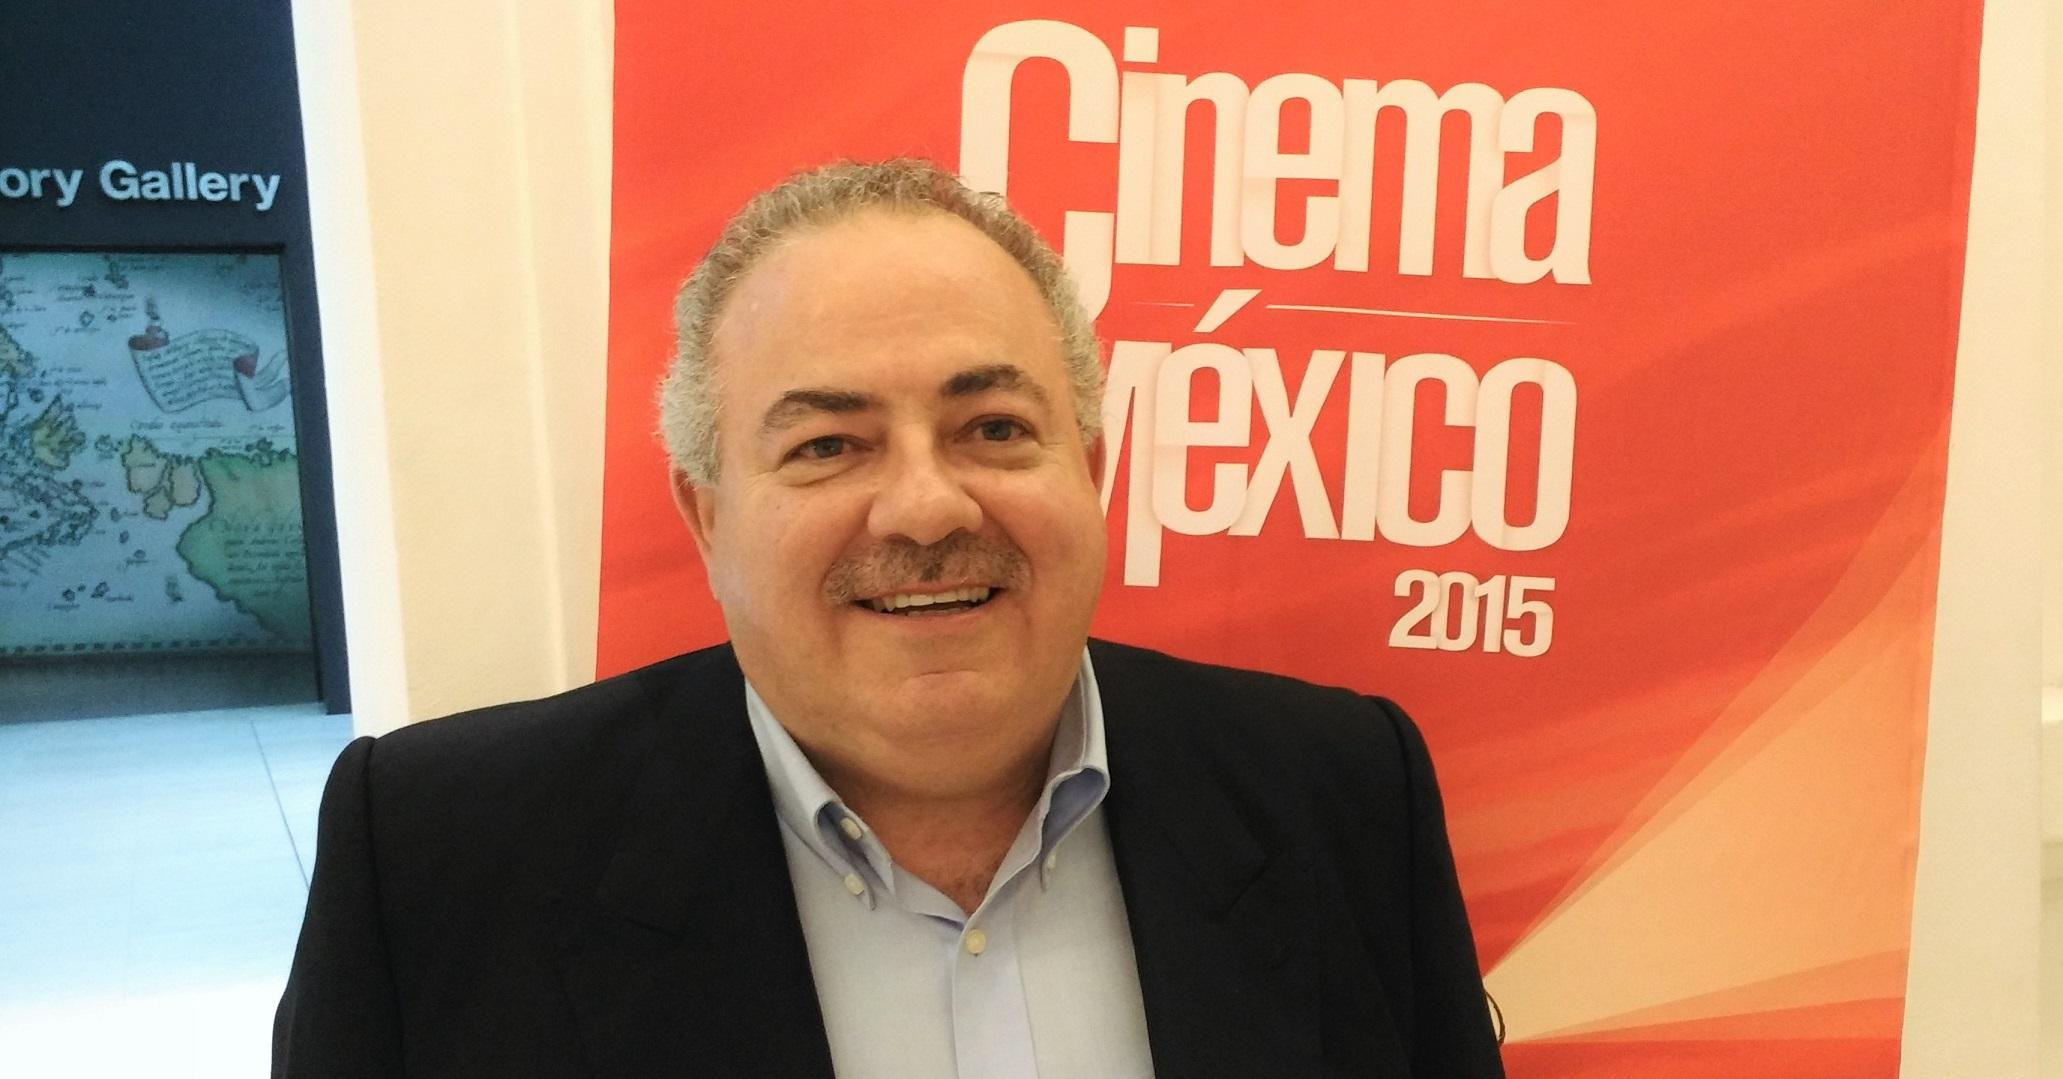 Mexico, Singapore Reveal Co-Production Treaty Plans (EXCLUSIVE)